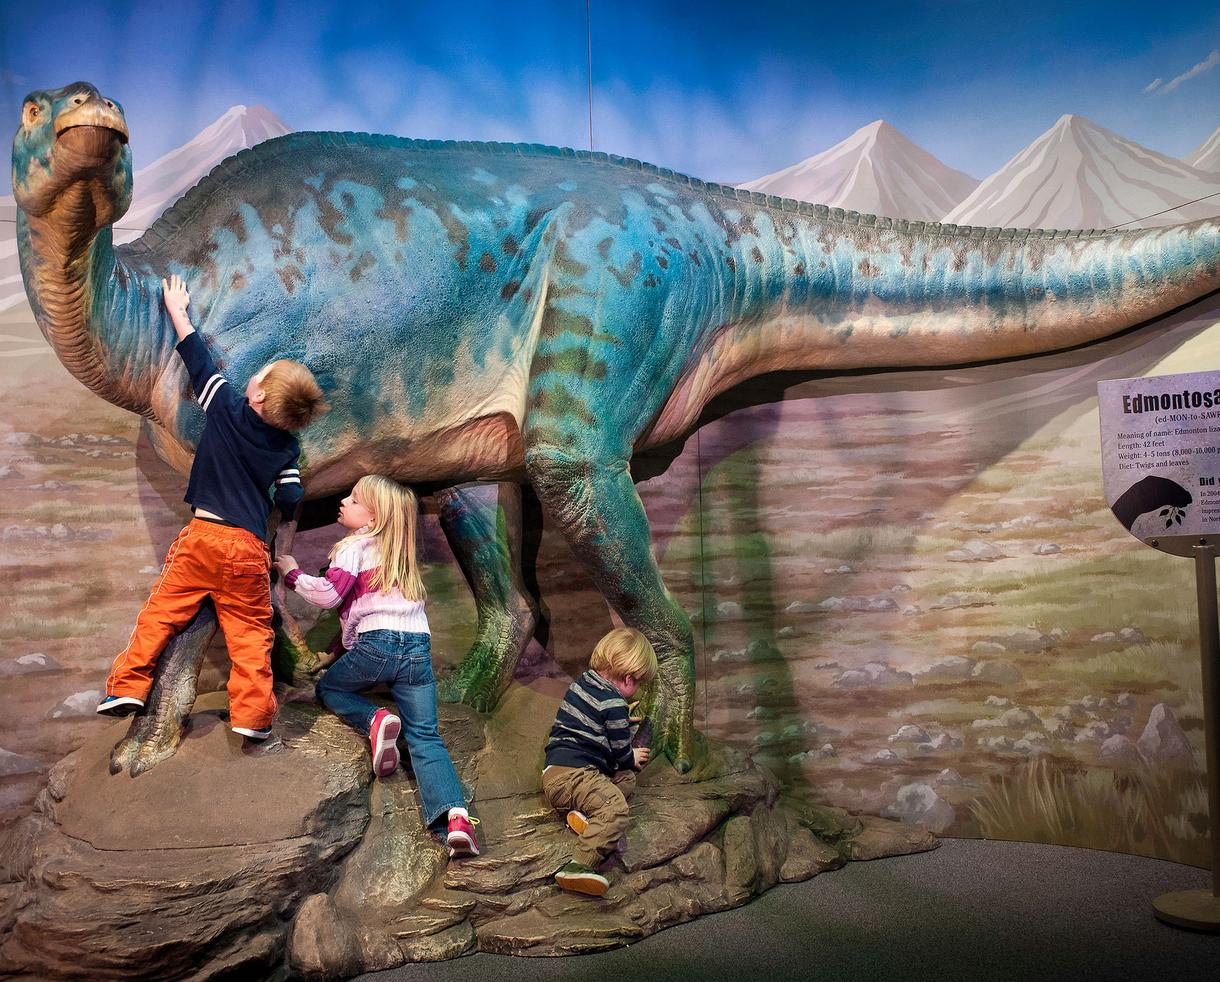 14-Month Family Membership for 4 People to Port Discovery Children's Museum